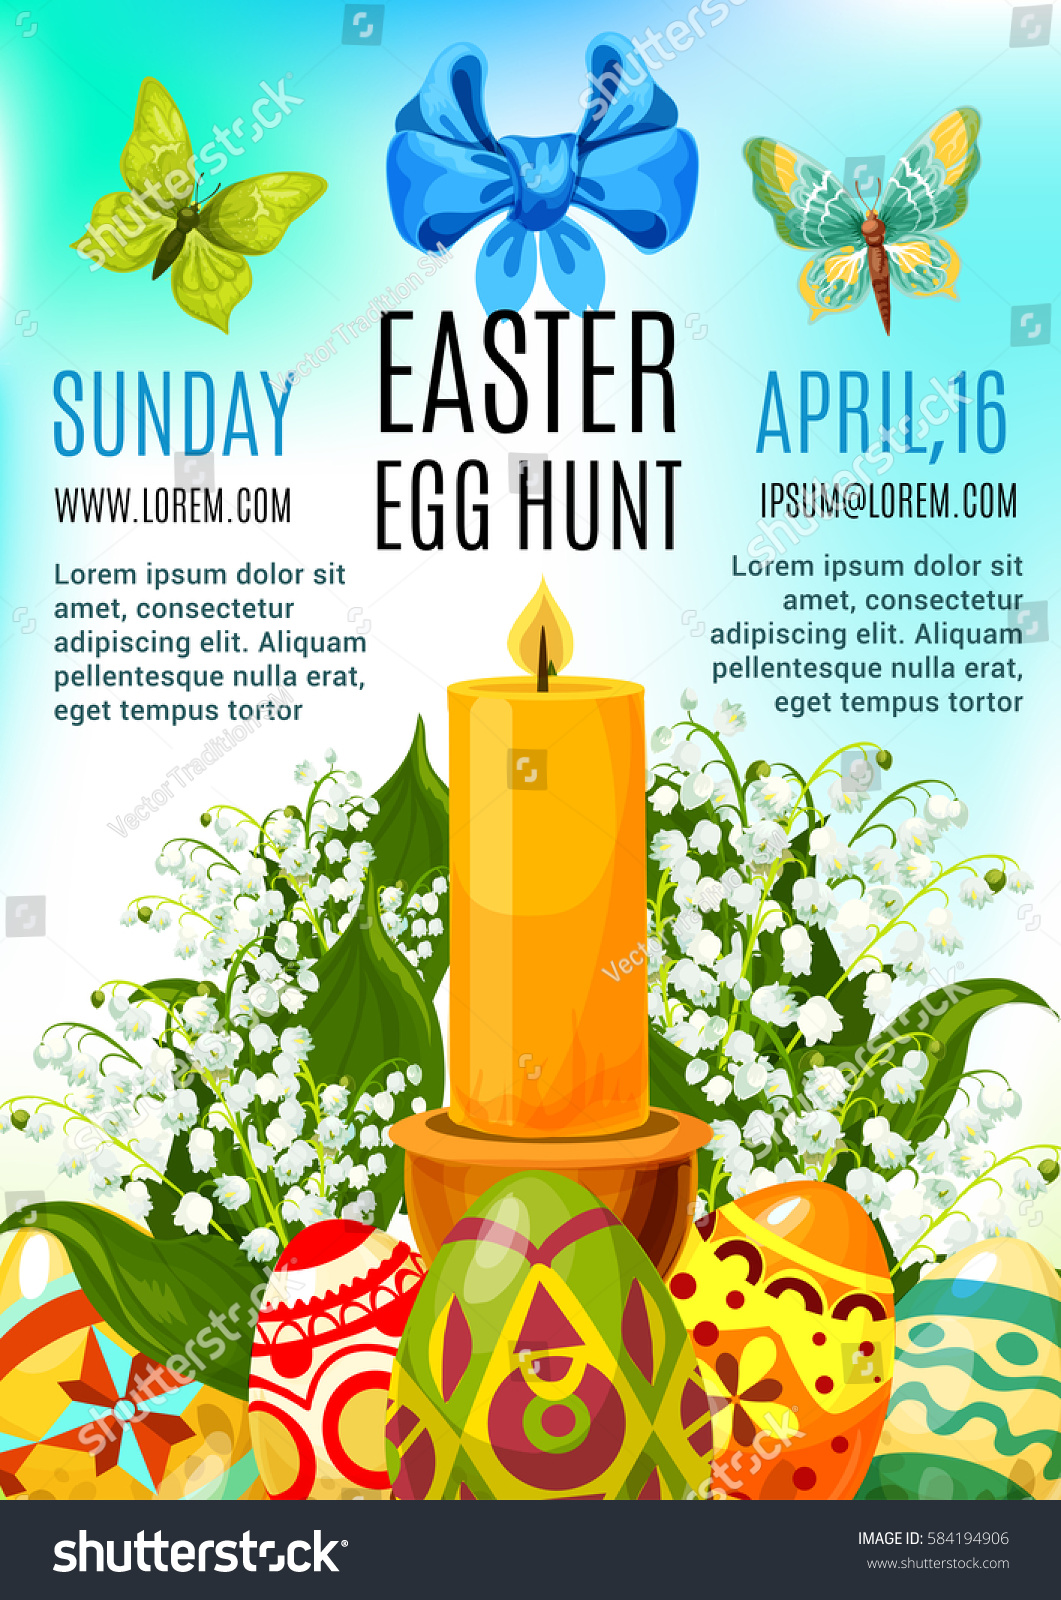 Easter Egg Hunt Celebration Poster Or Invitation Flyer Template Design.  Decorated Easter Eggs With Lily